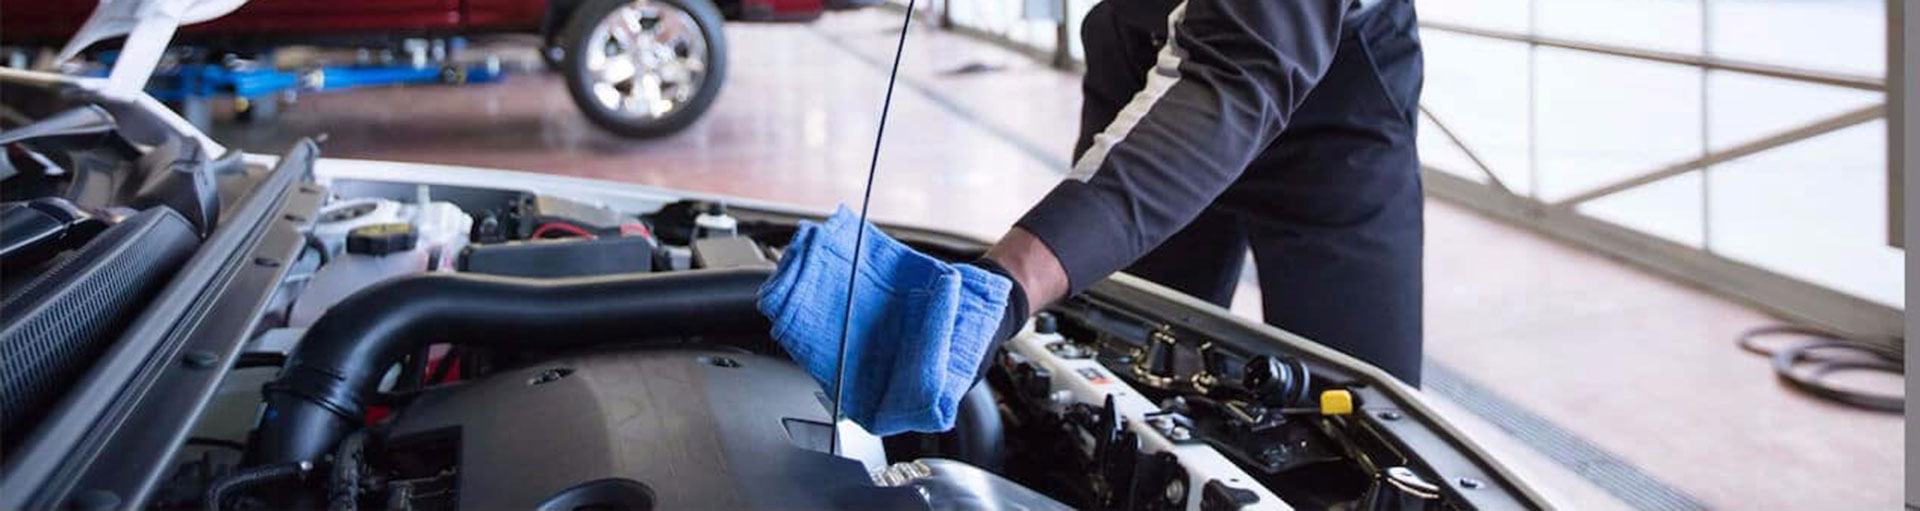 Chevrolet Oil Change Services